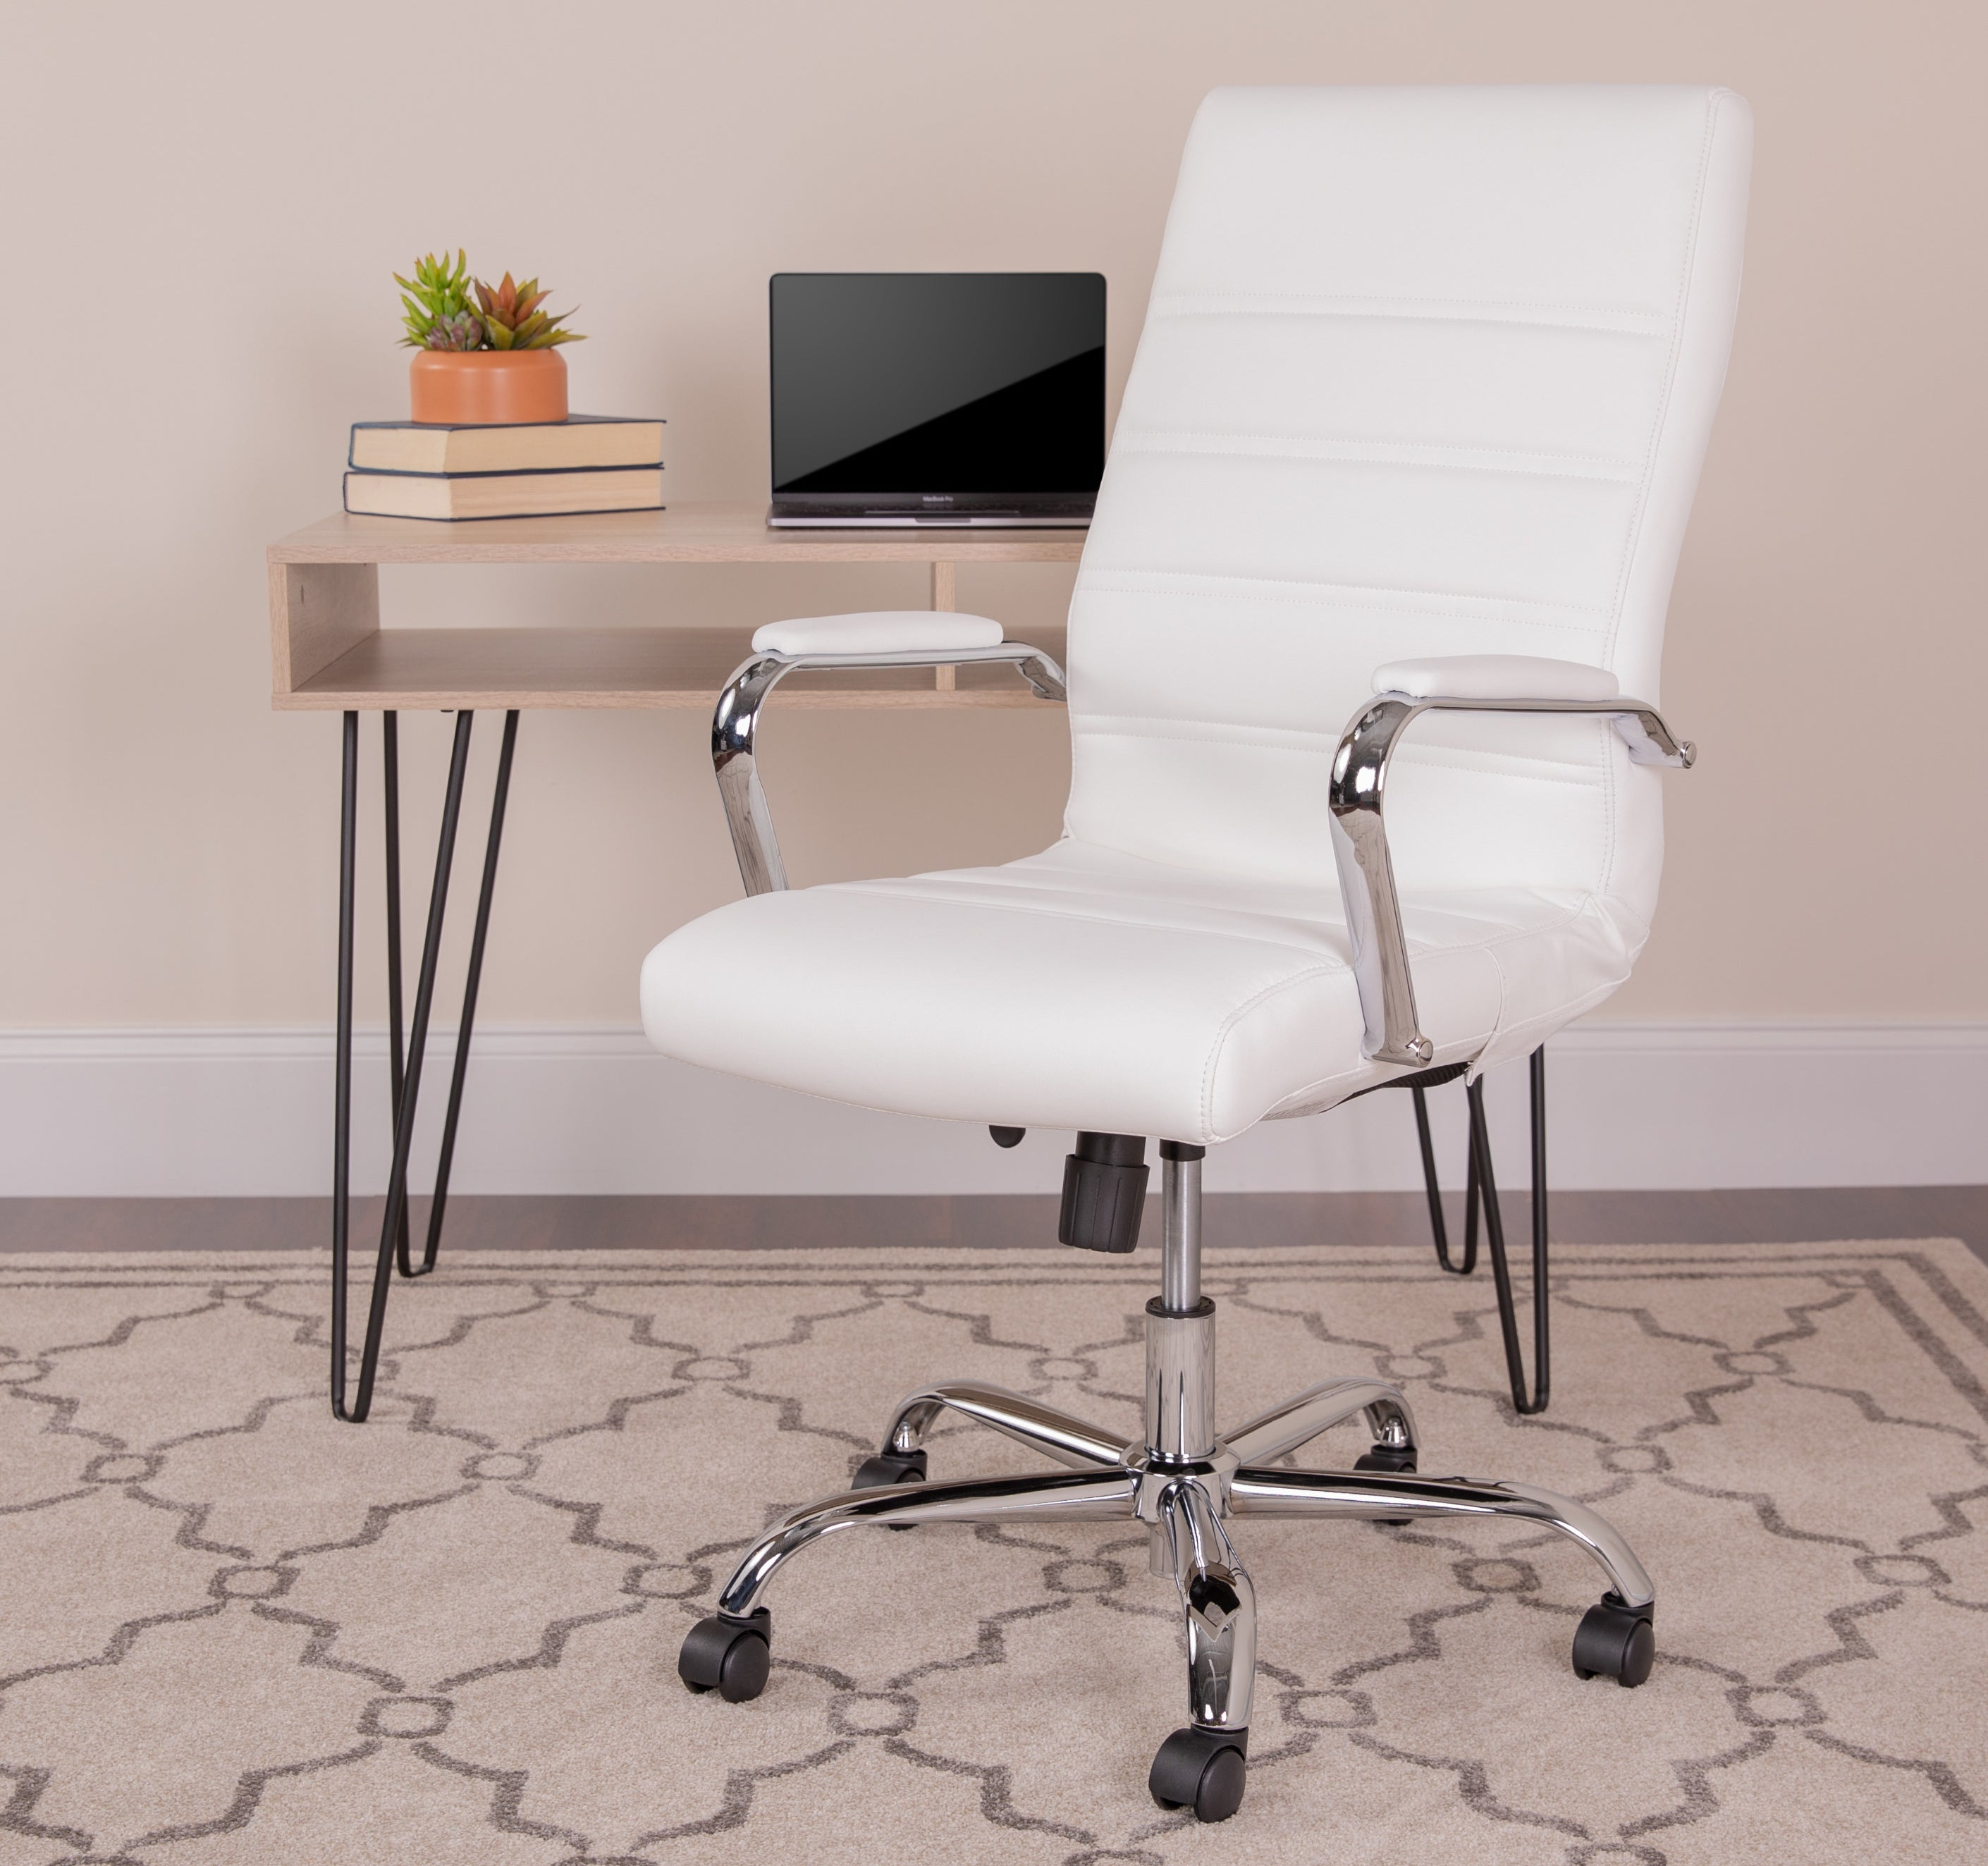 A white swivel chair